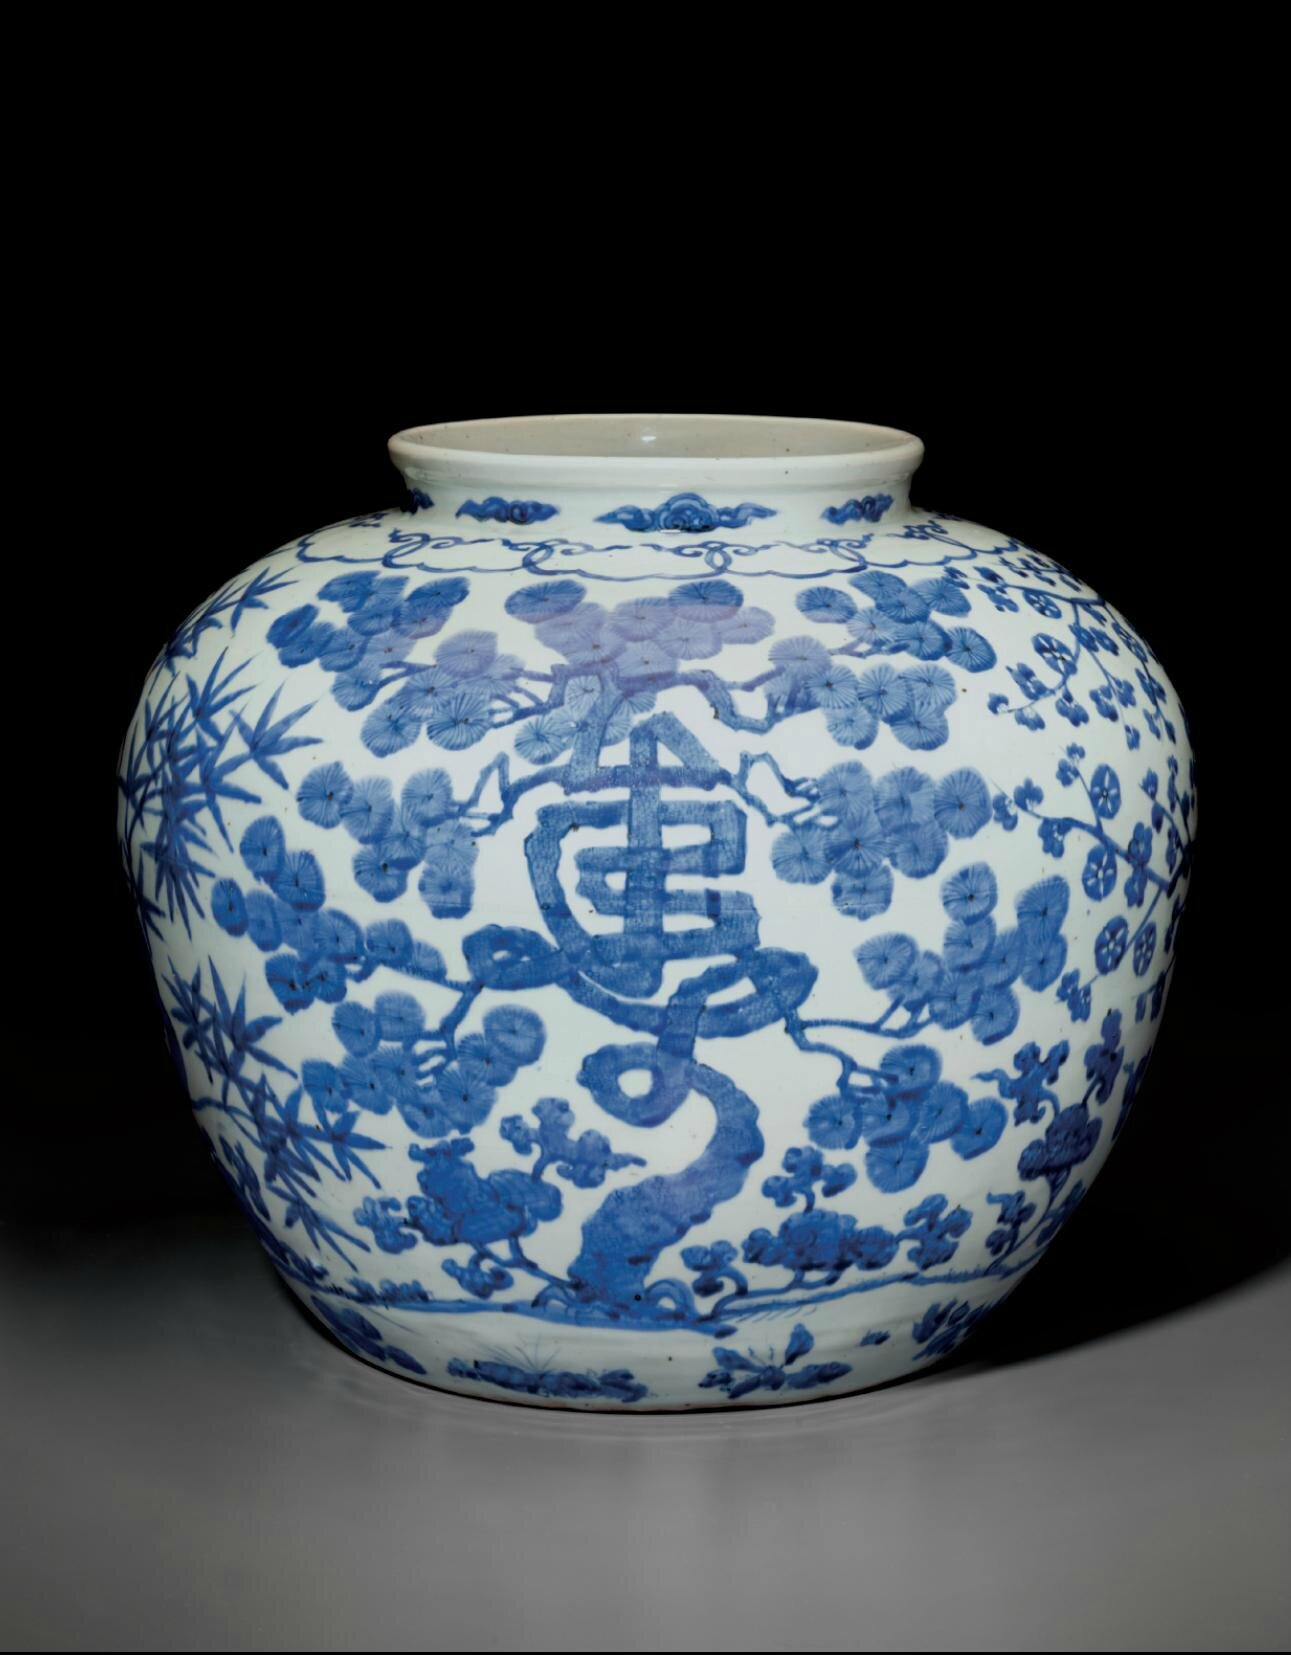 A large blue and white 'Three friends of winter' jar, Jiajing six-character mark in underglaze blue and of the period (1522-1566